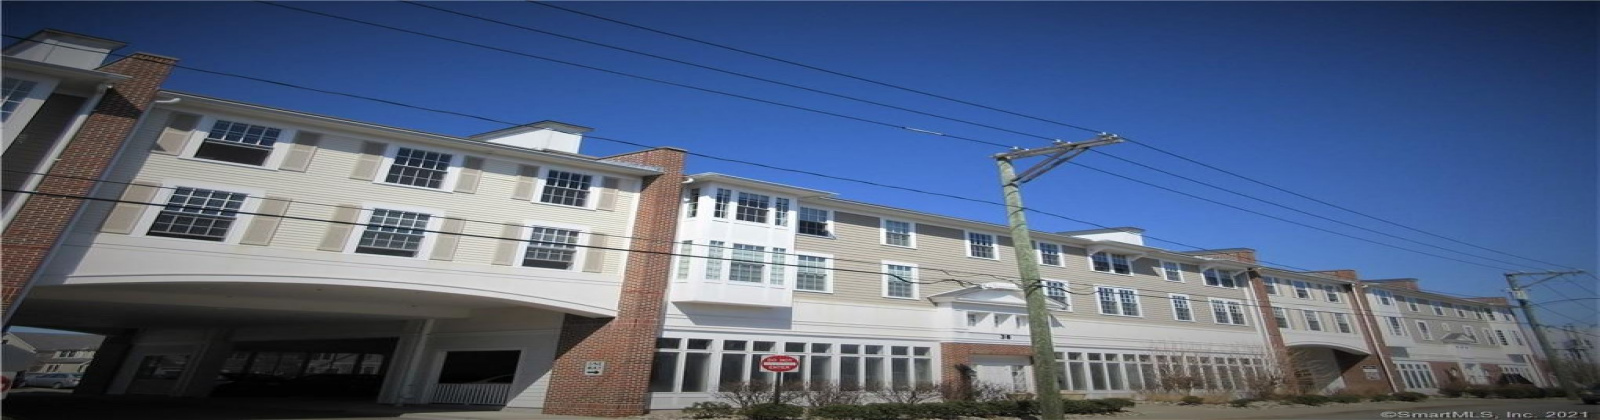 38 Hope St, Niantic, Connecticut, 2 Bedrooms Bedrooms, ,2 BathroomsBathrooms,Apartment,For Sale,Hope St,1004